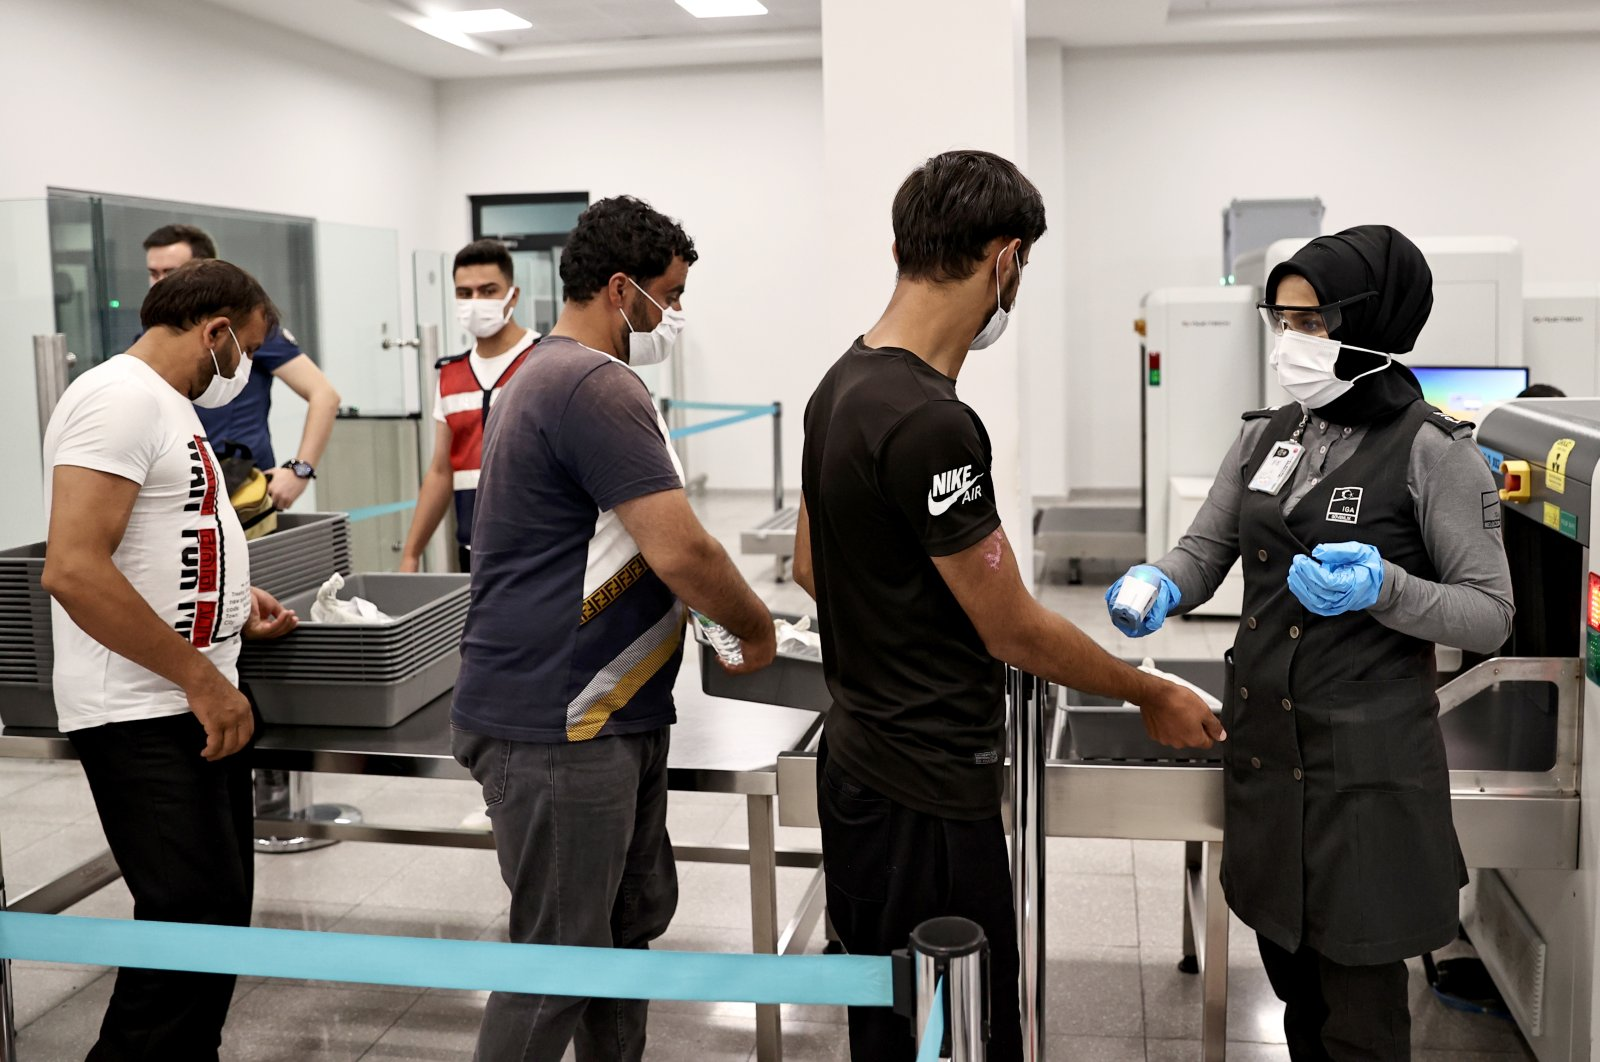 Irregular migrants referred to repatriation centers are sent to Istanbul Airport, Turkey, Aug. 14, 2021. (AA Photo)